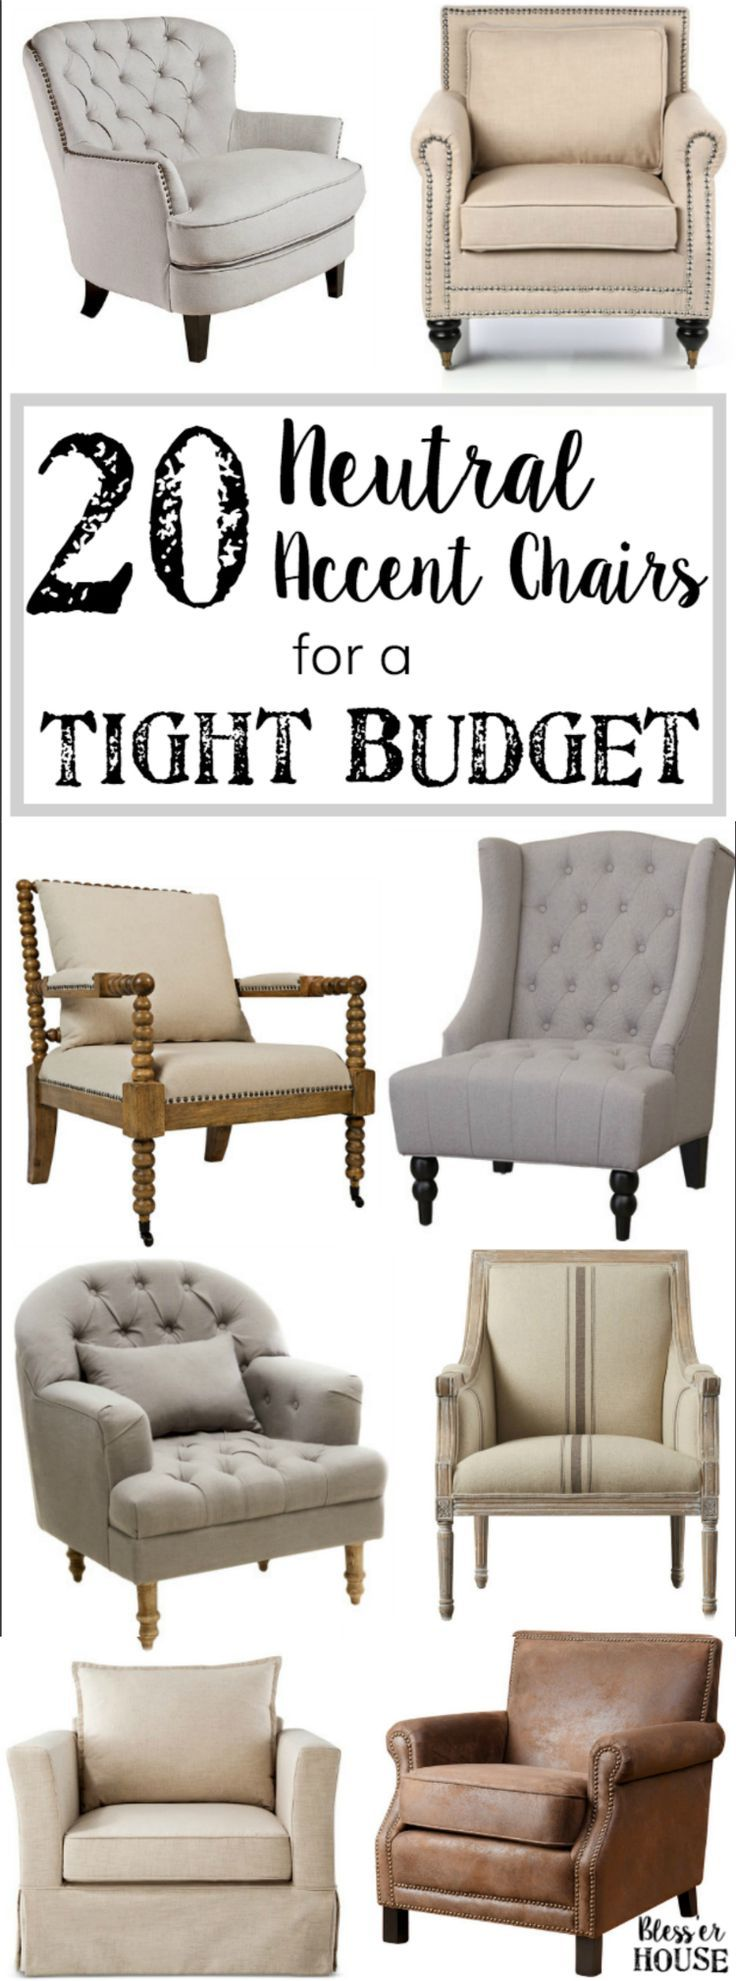 25+ best ideas about Accent chairs on Pinterest | Chairs for ...